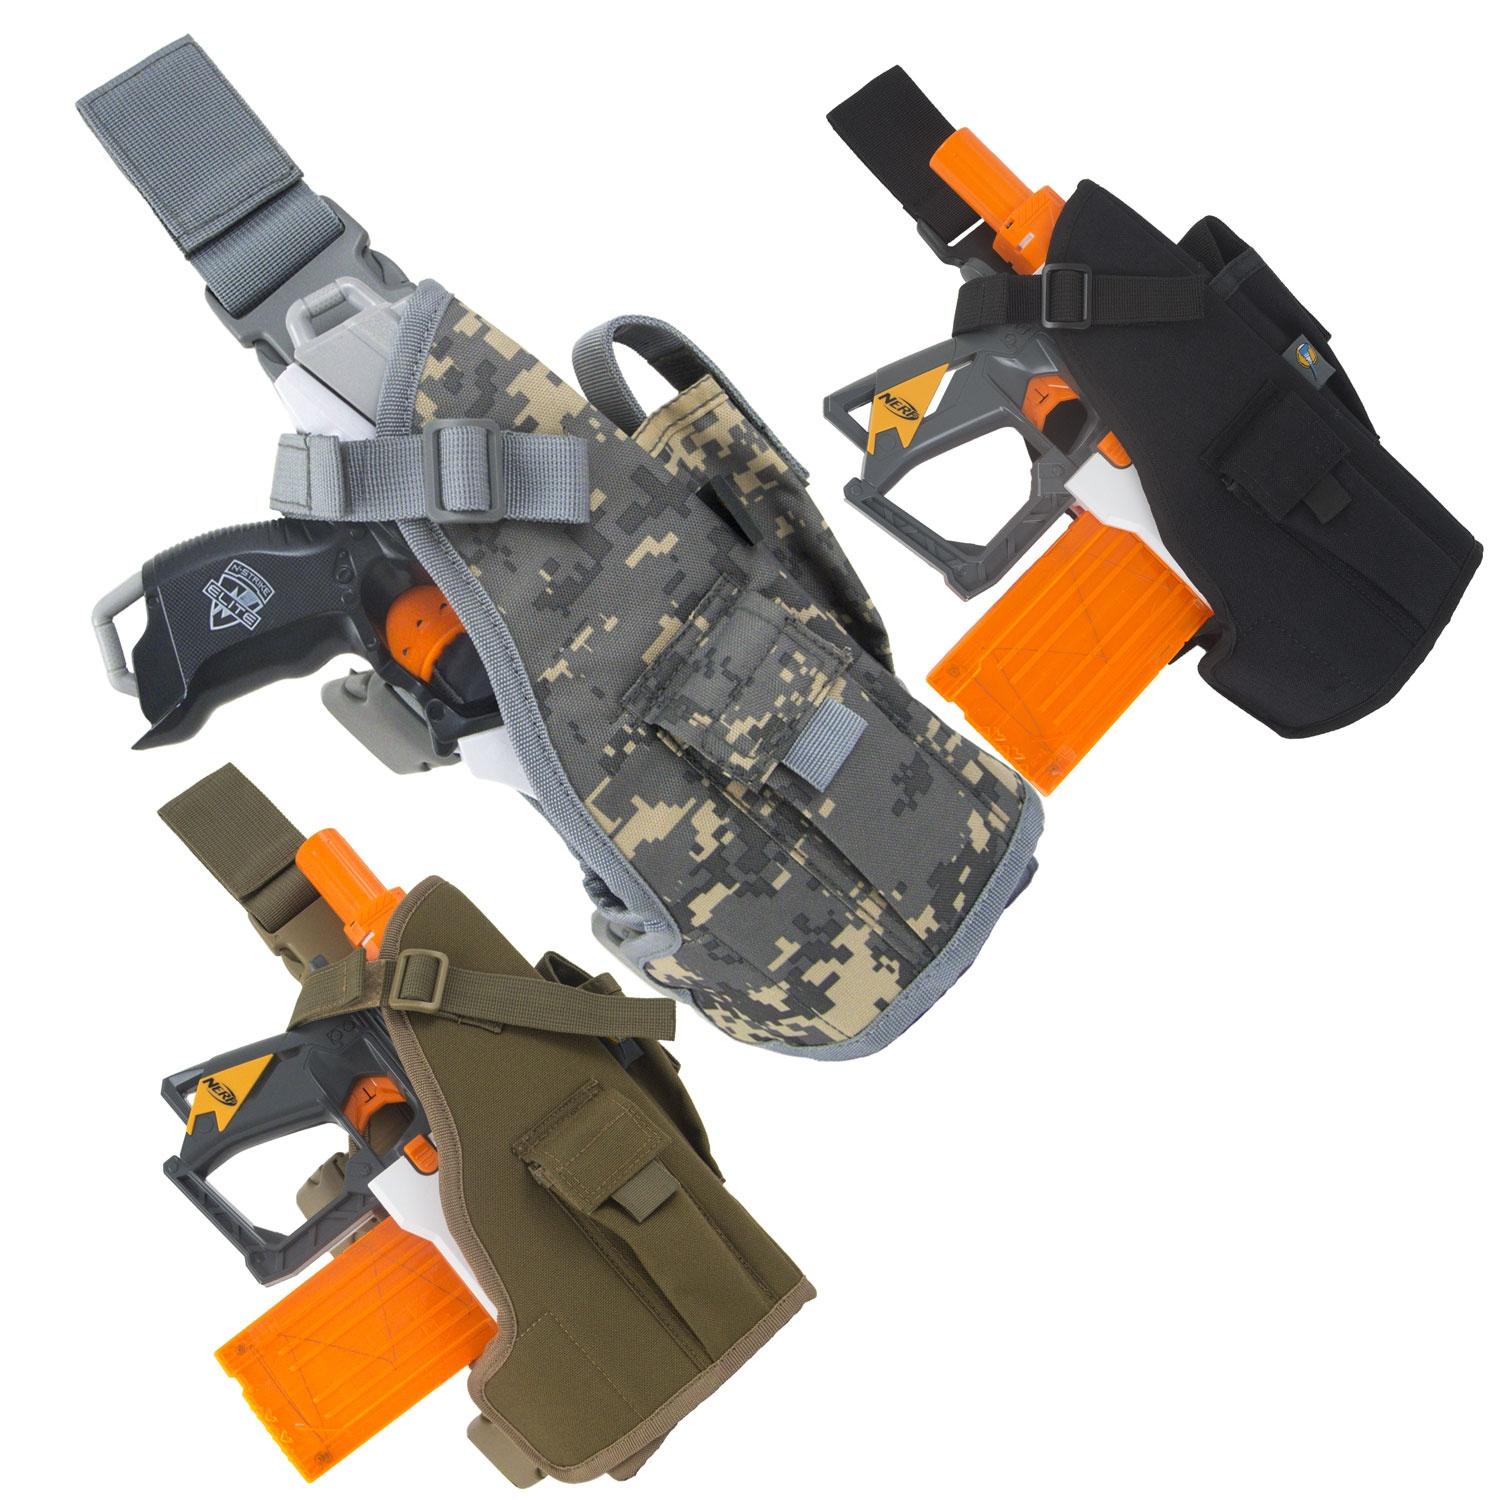 Nerf Gun Birthday Party Invitations Nerf Gun Holster Made From Duct Tape  these Instructions Would Be